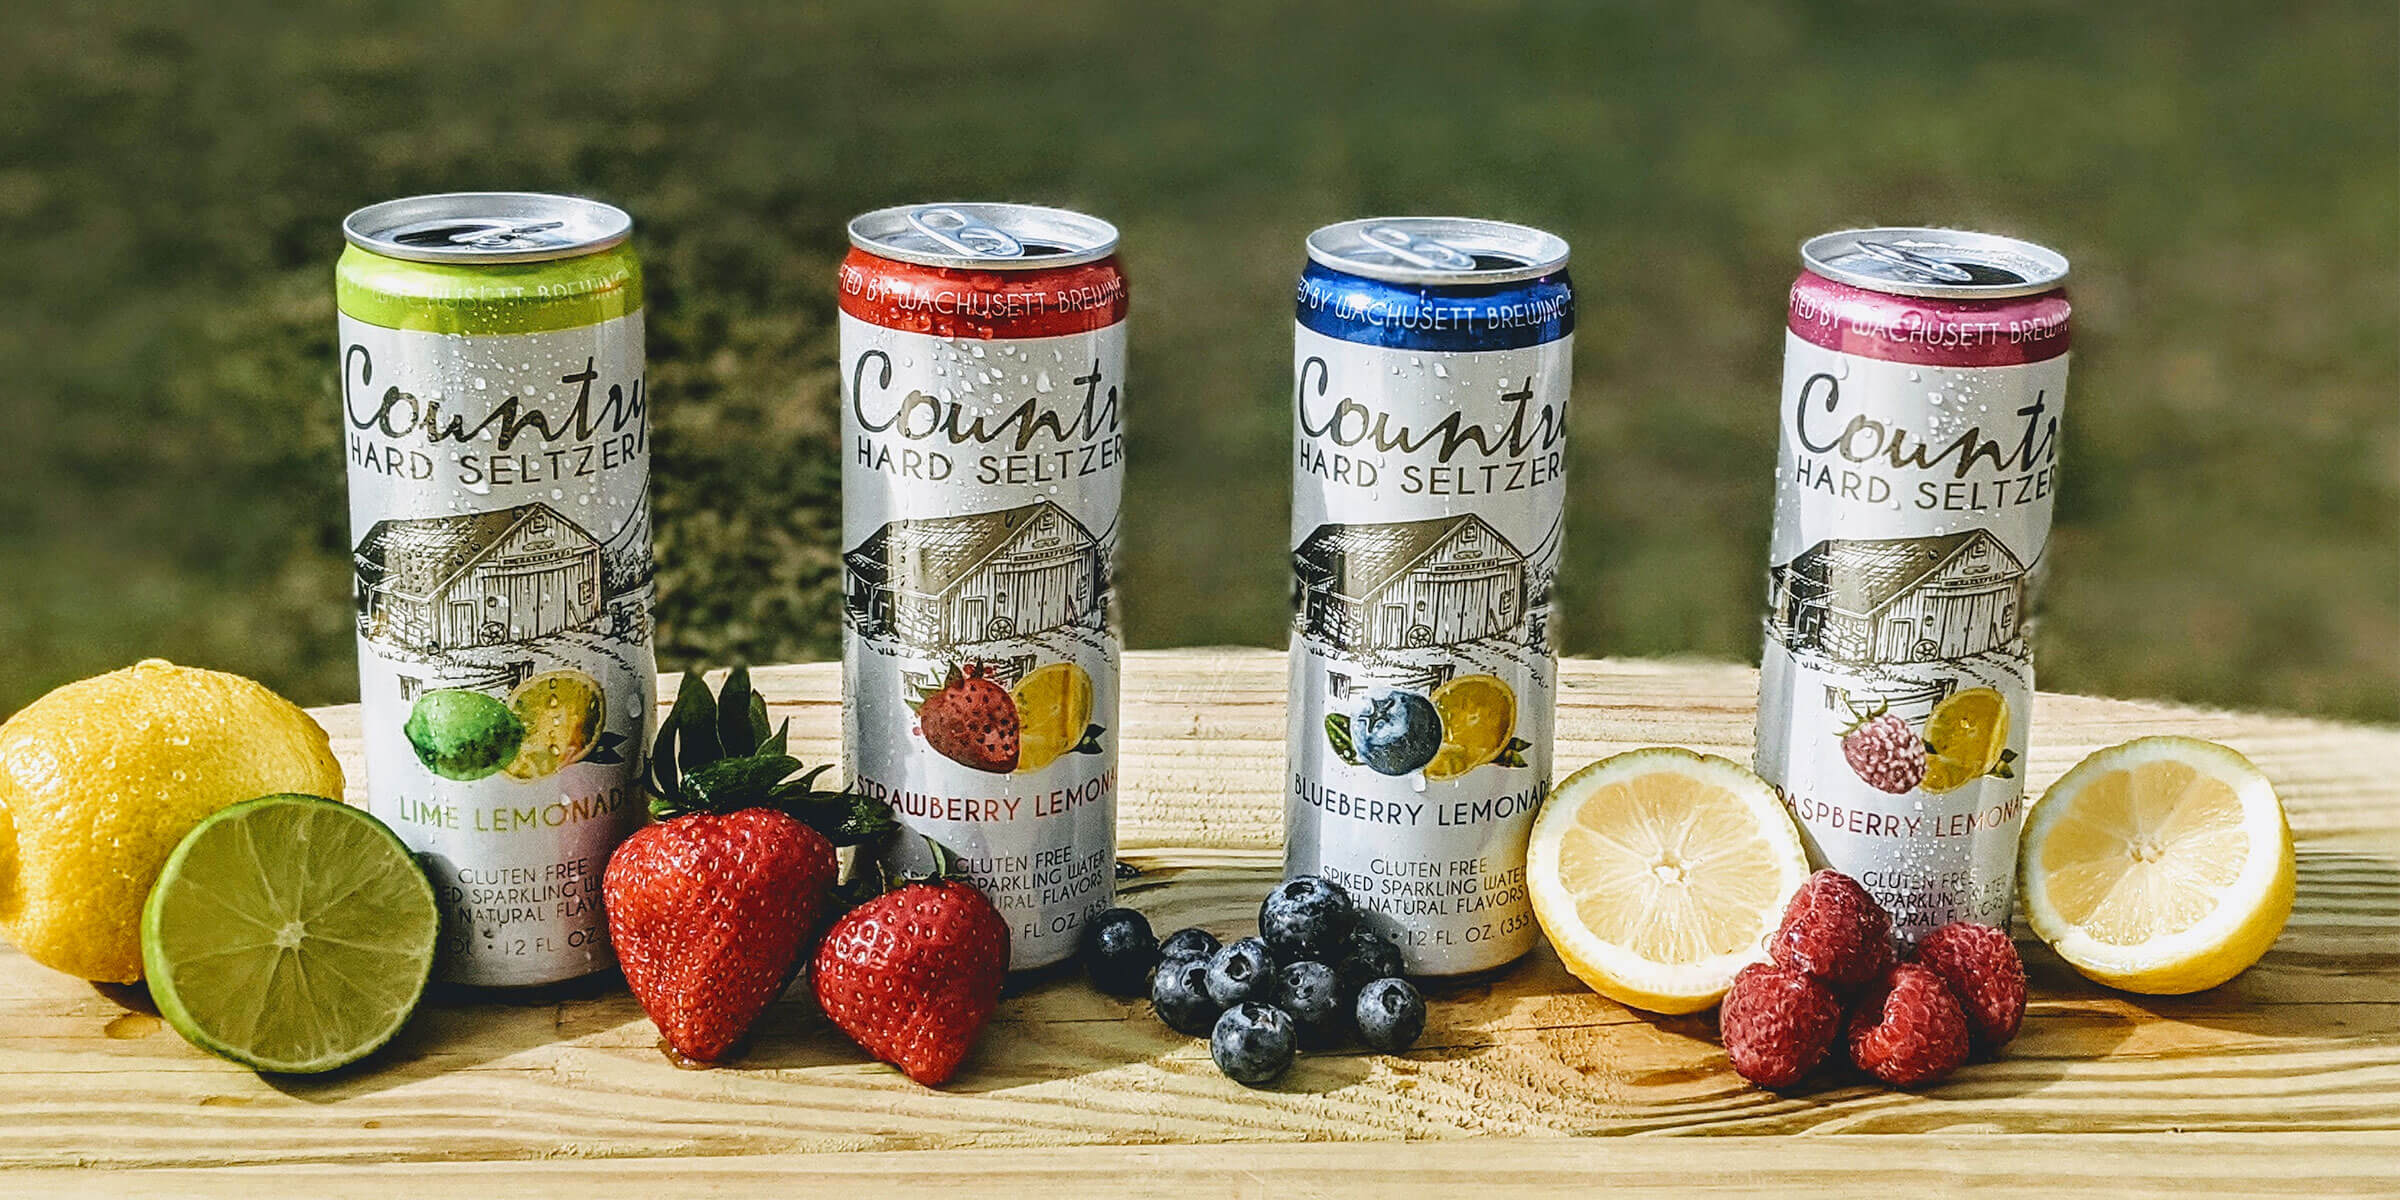 Canned lineup of Country Hard Seltzer by Wachusett Brewing Company